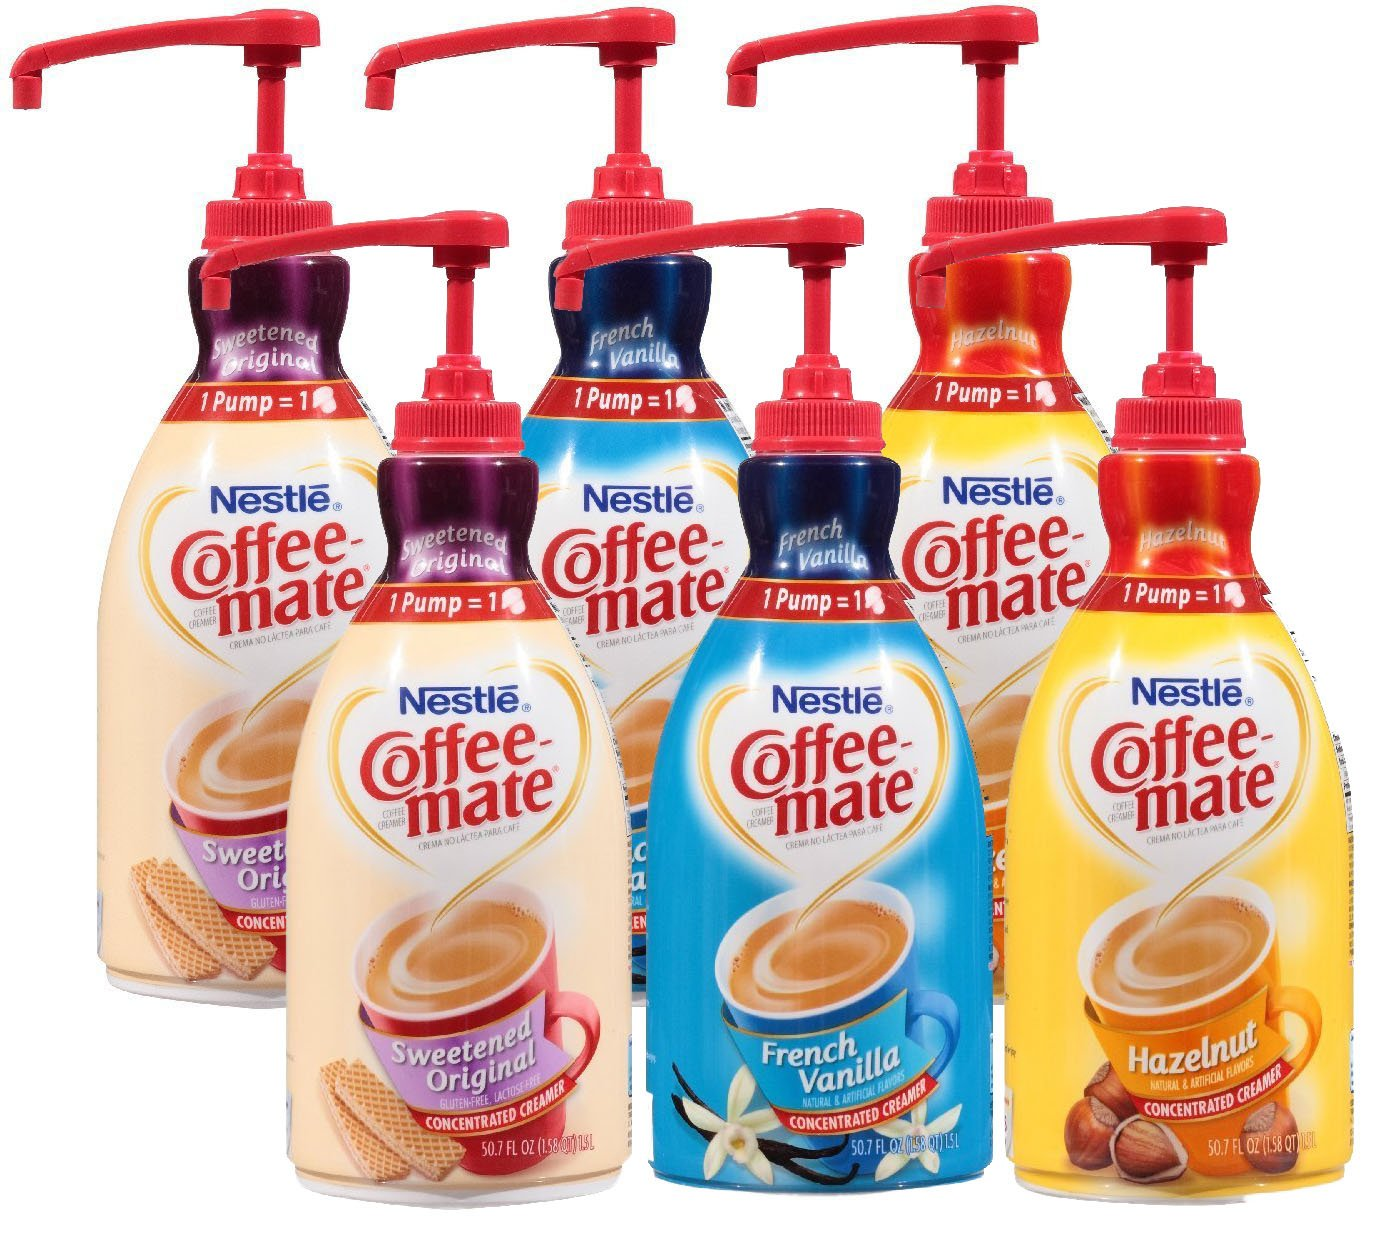 Coffee Mate Liquid Concentrate 1.5 Liter Pump Bottle - Variety 3 Pack - Original Sweetened Cream, French Vanilla & Hazelnut - 2 COUNT by Coffee-mate